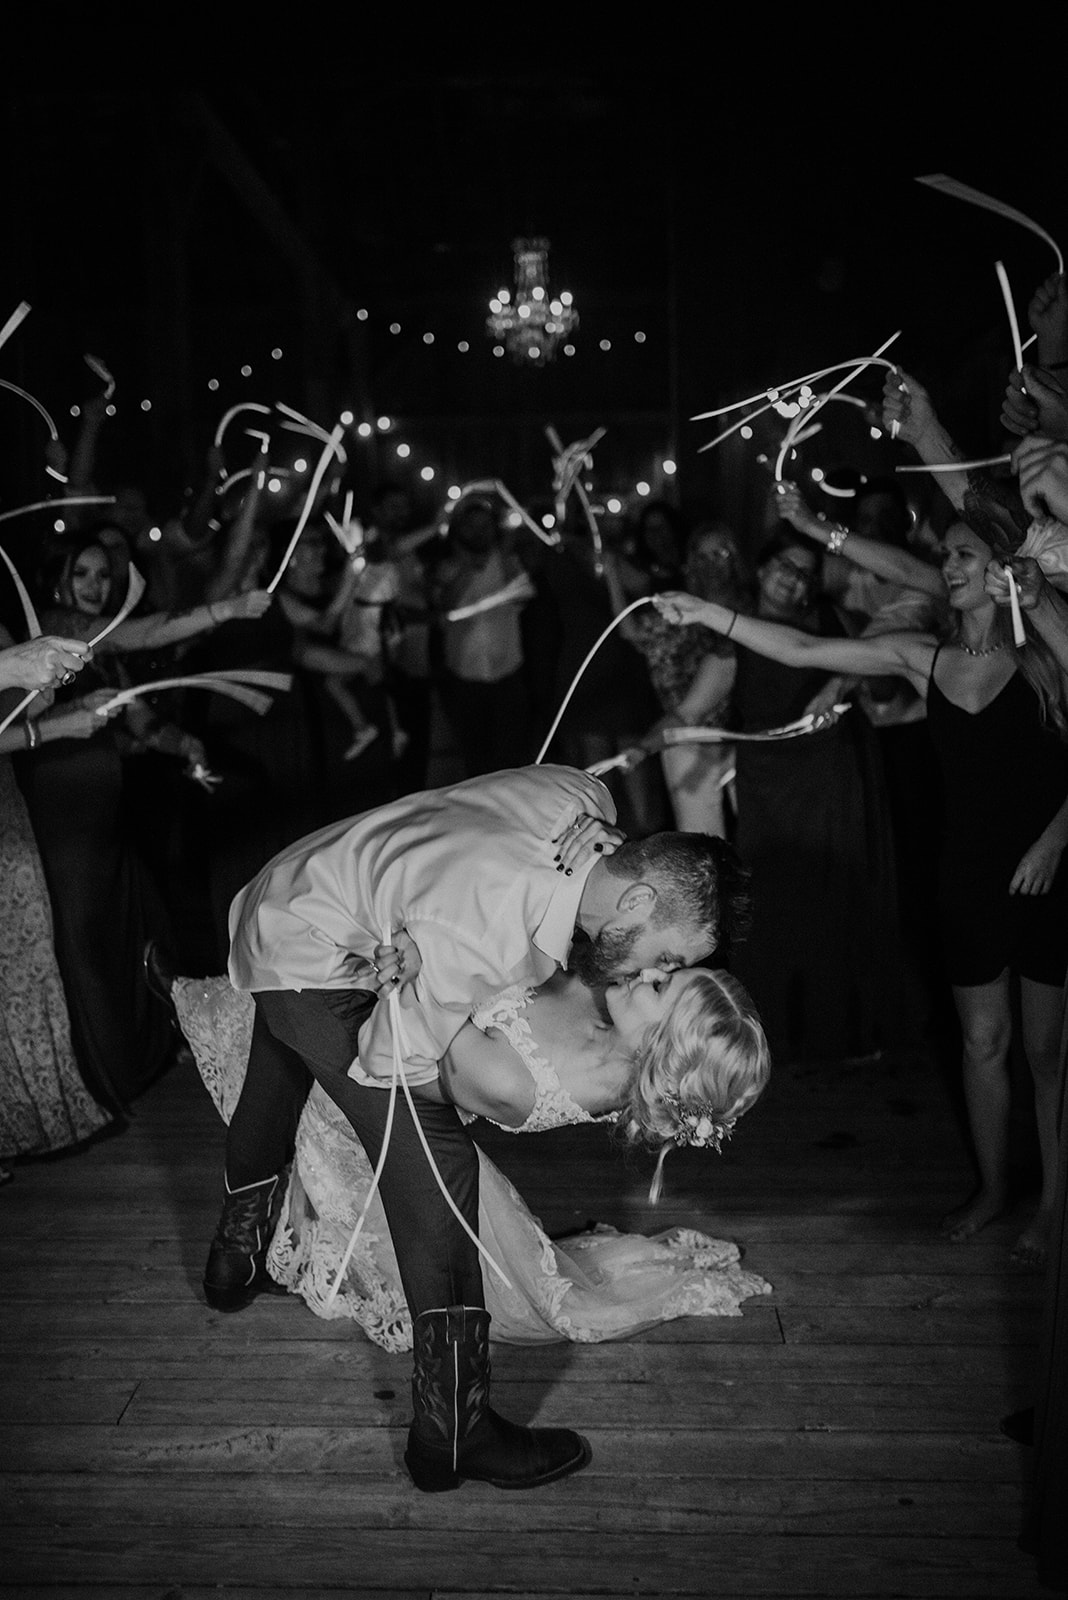 overthevineswisconsinwedding_1707.jpg